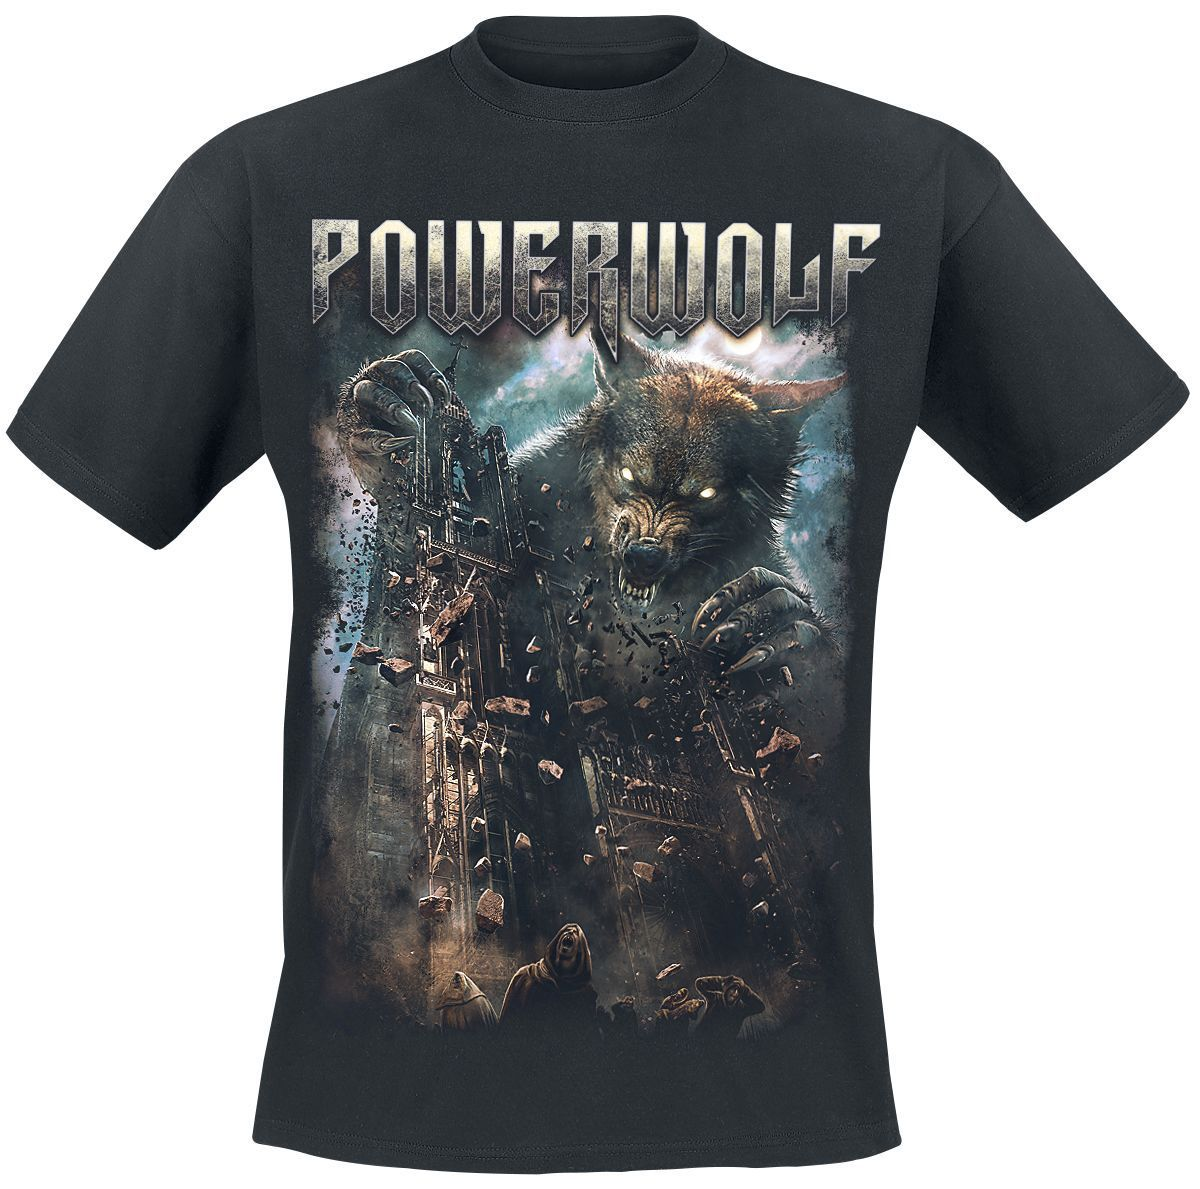 Powerwolf Katedrali T-Shirt siyah